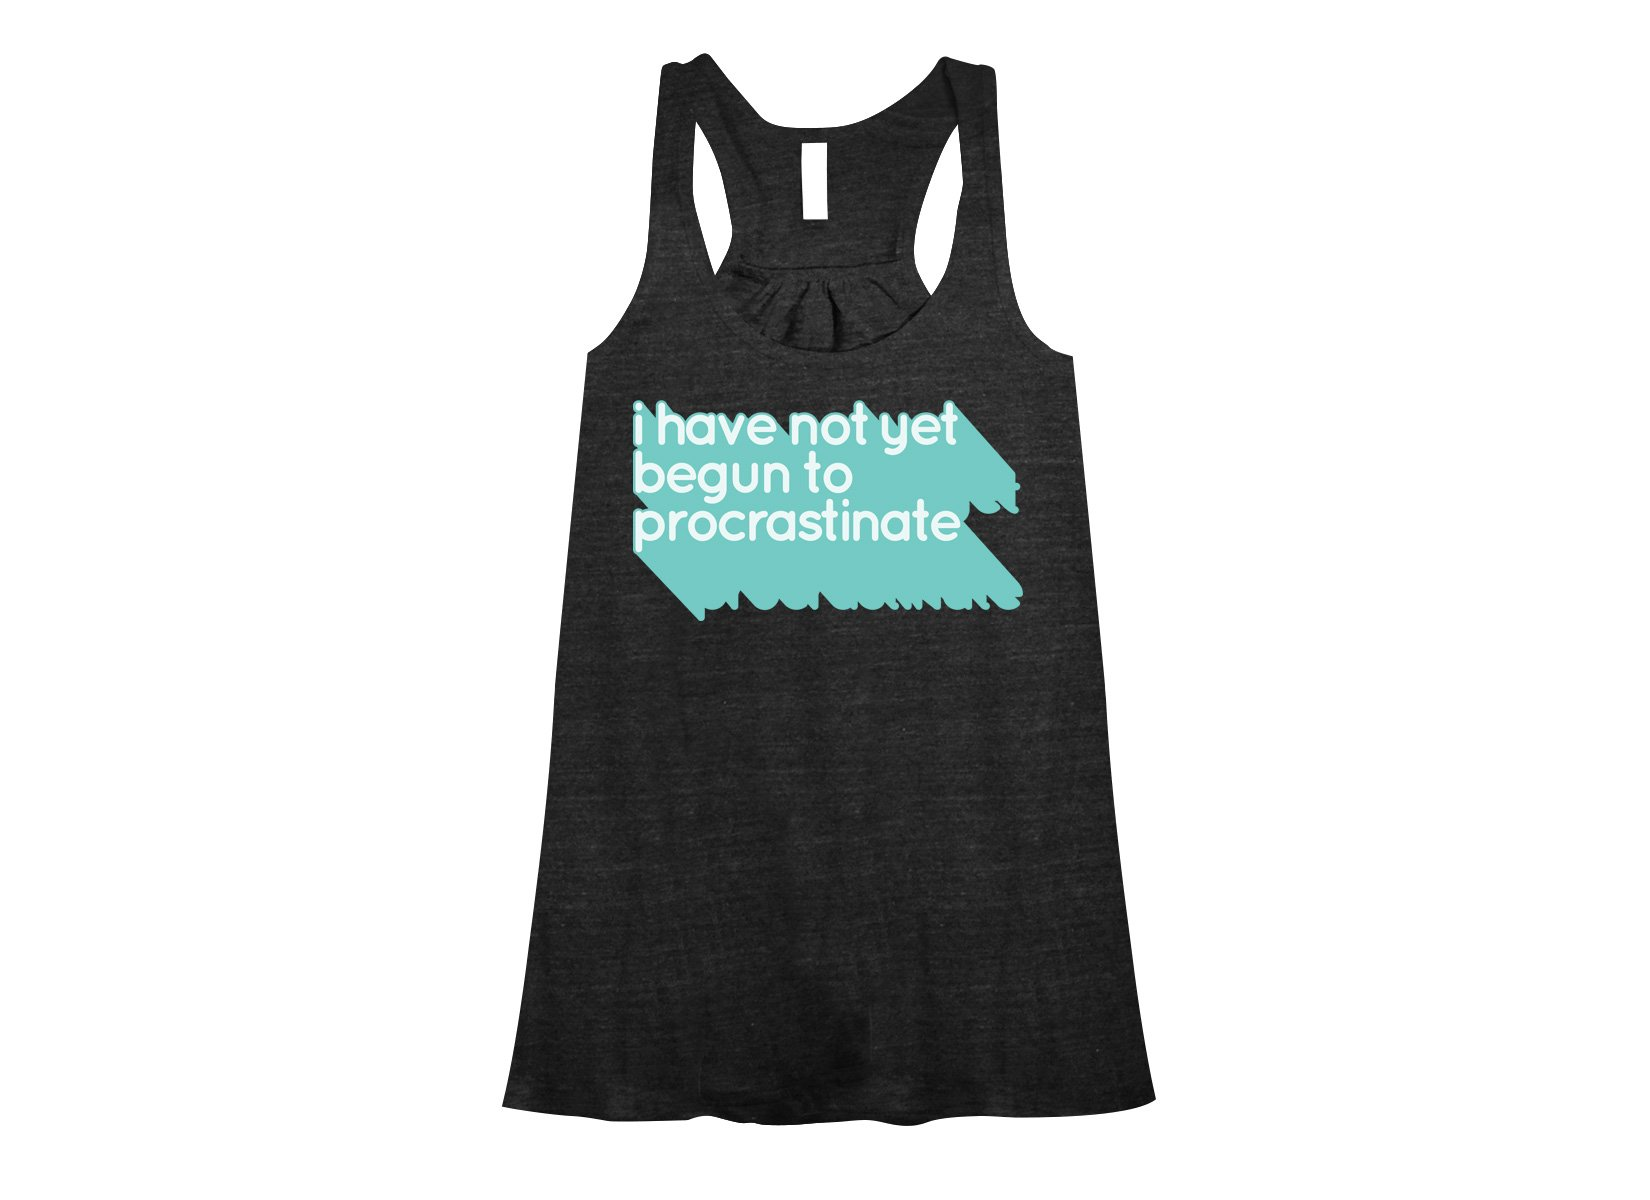 Not Begun To Procrastinate on Womens Tanks T-Shirt